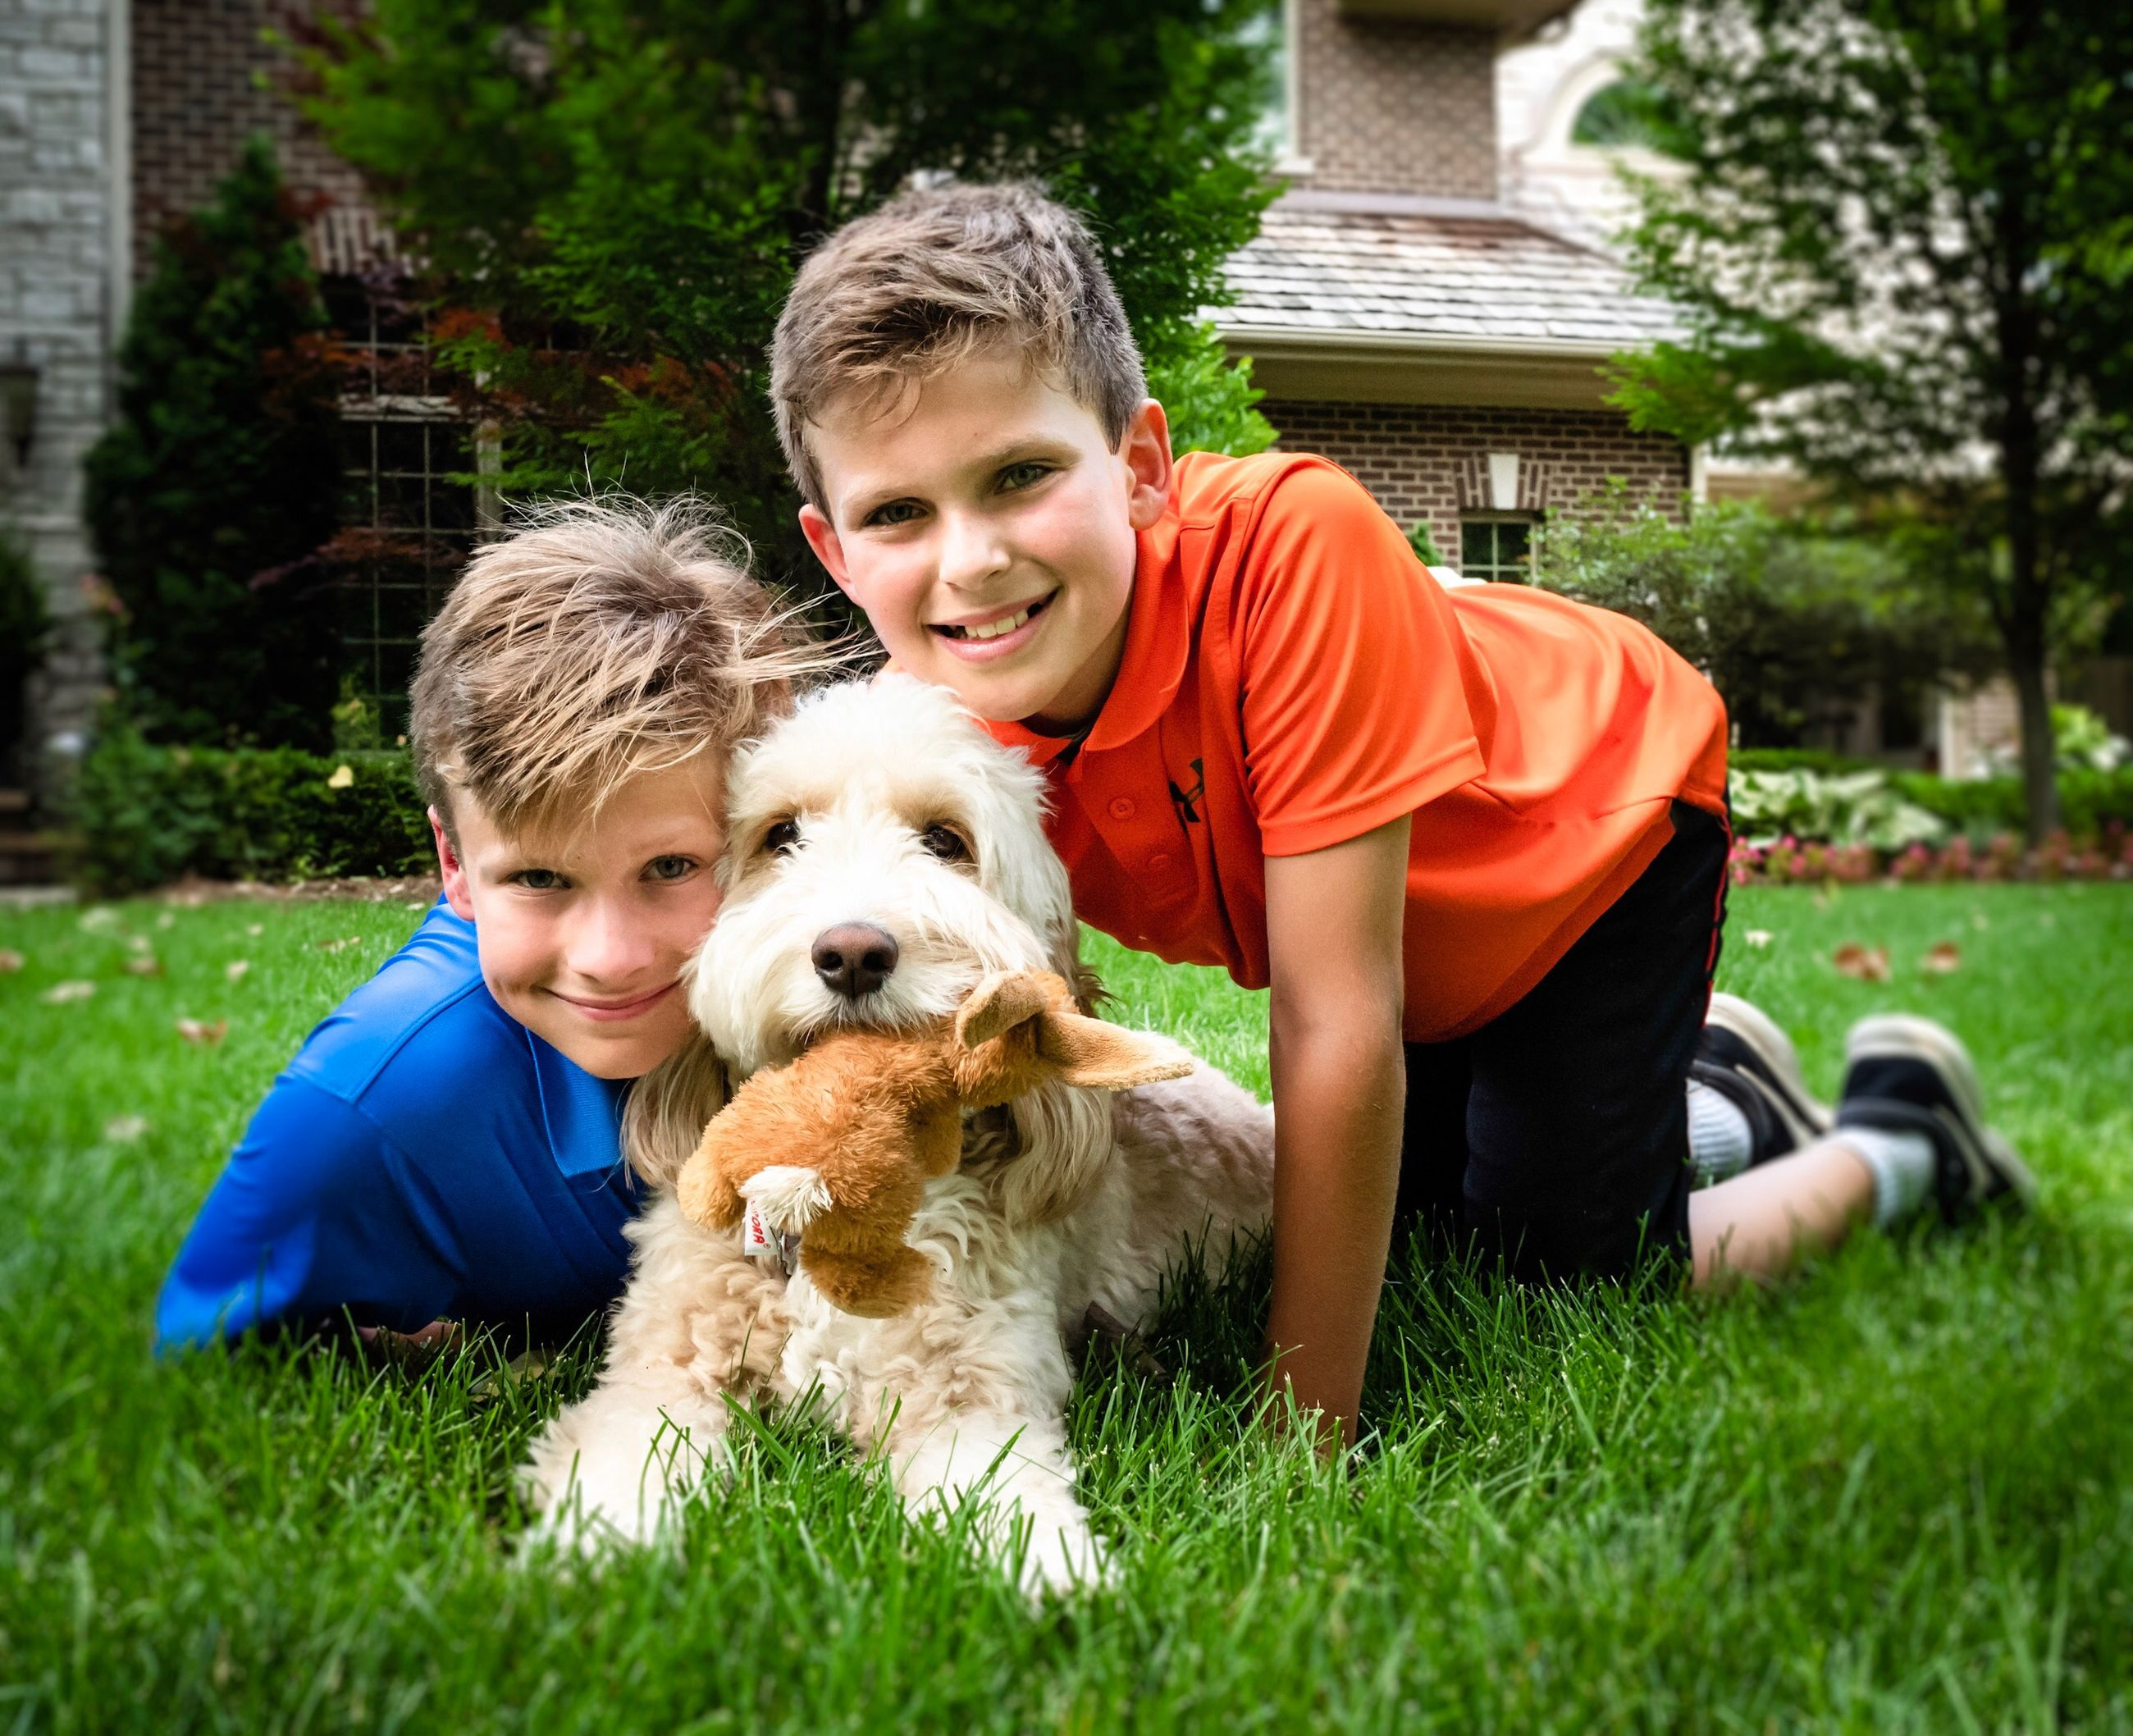 Portrait of smiling boys with dog on grass at back yard